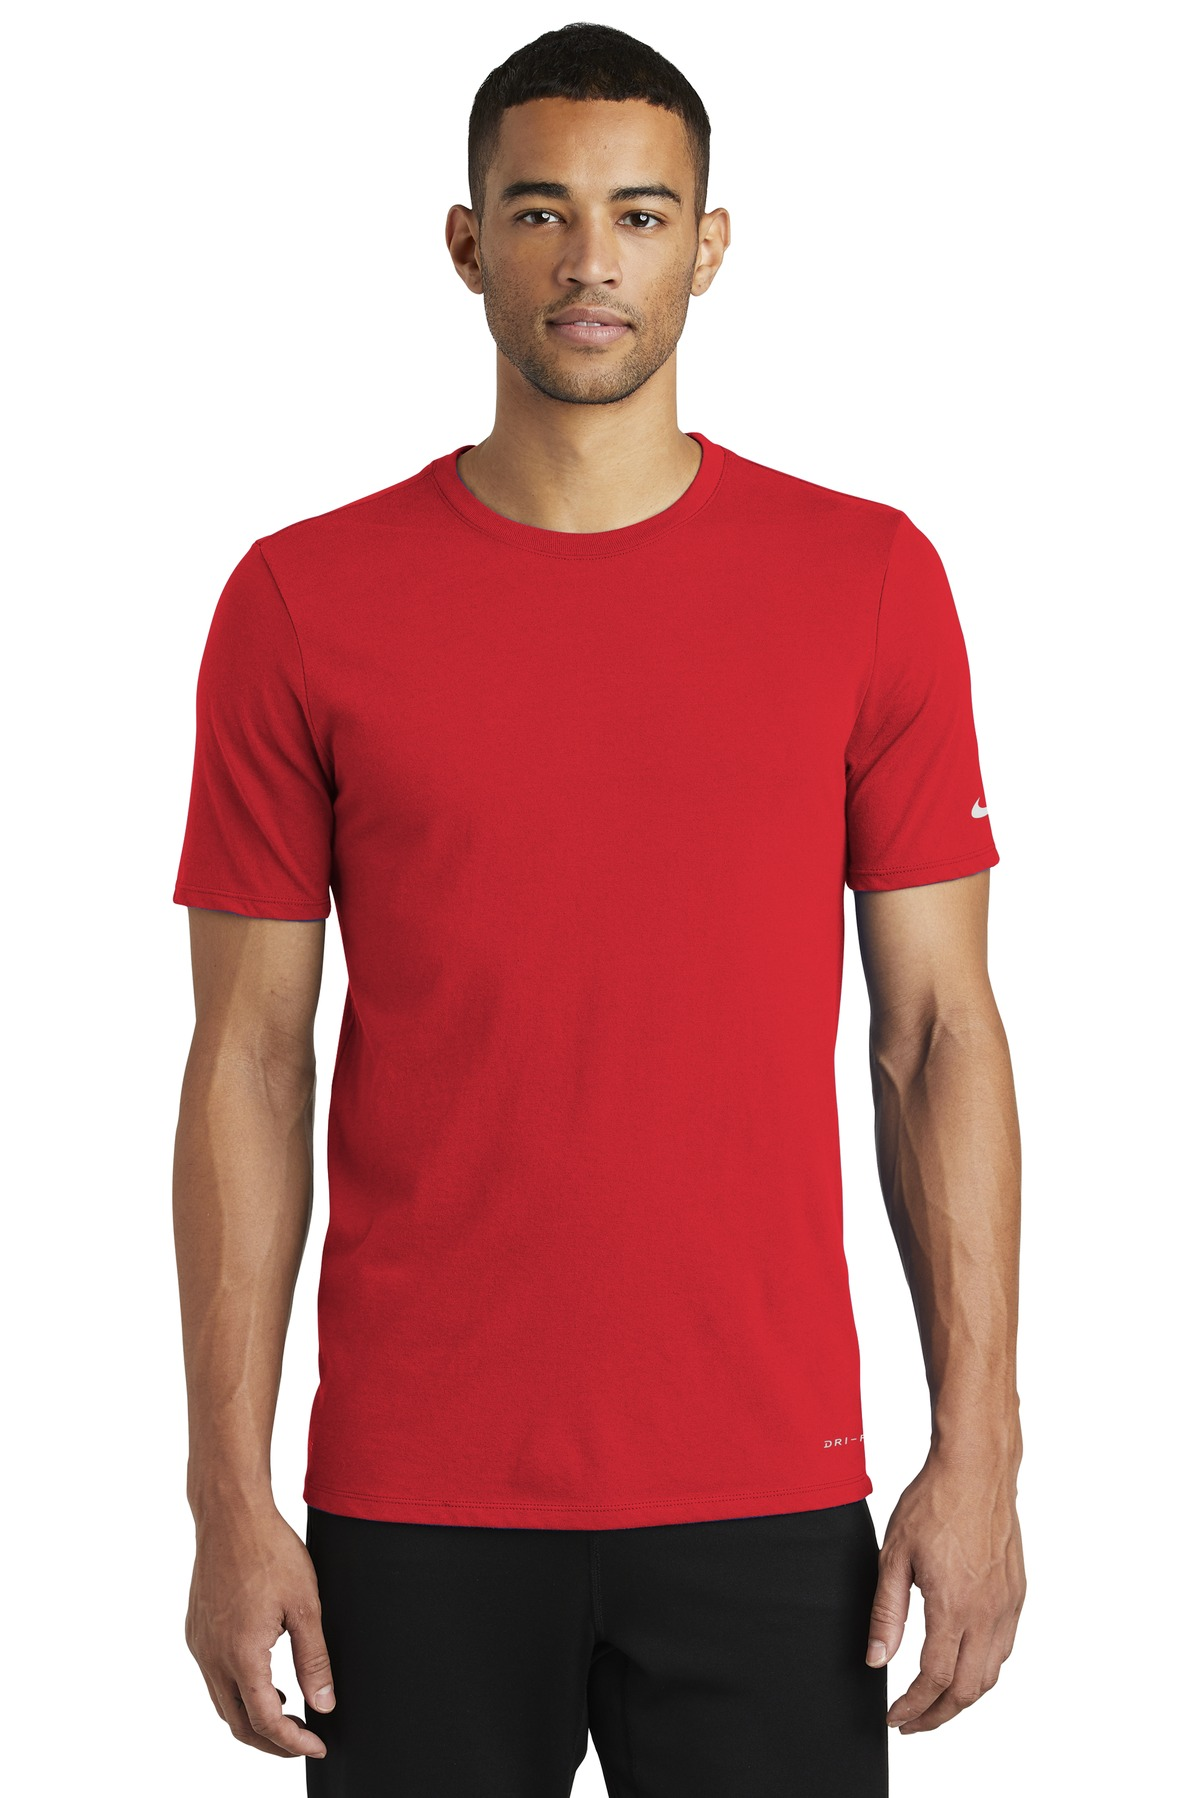 Nike Dri-FIT Cotton/Poly Tee. NKBQ5231 - University Red